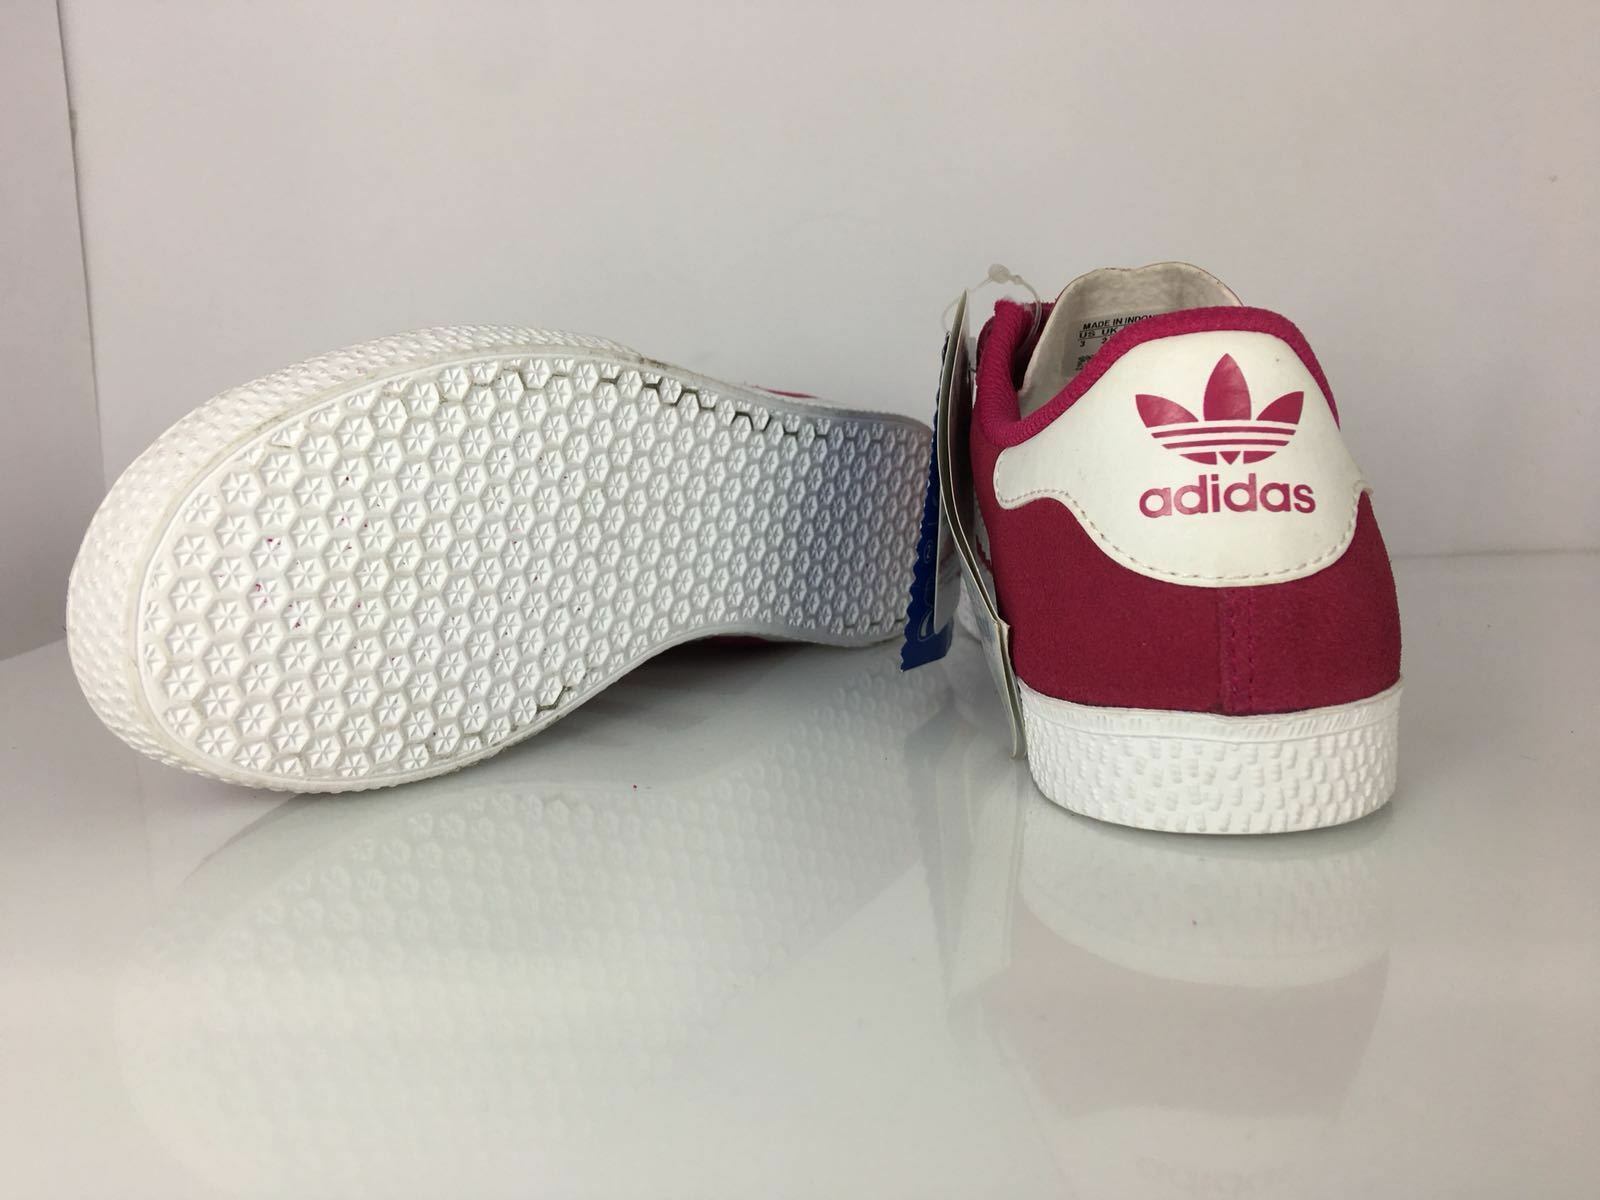 SCARPE N. 35 UK. 2 1/2 CM 21 ADIDAS GAZELLE  ART. BA9326 Sneakers